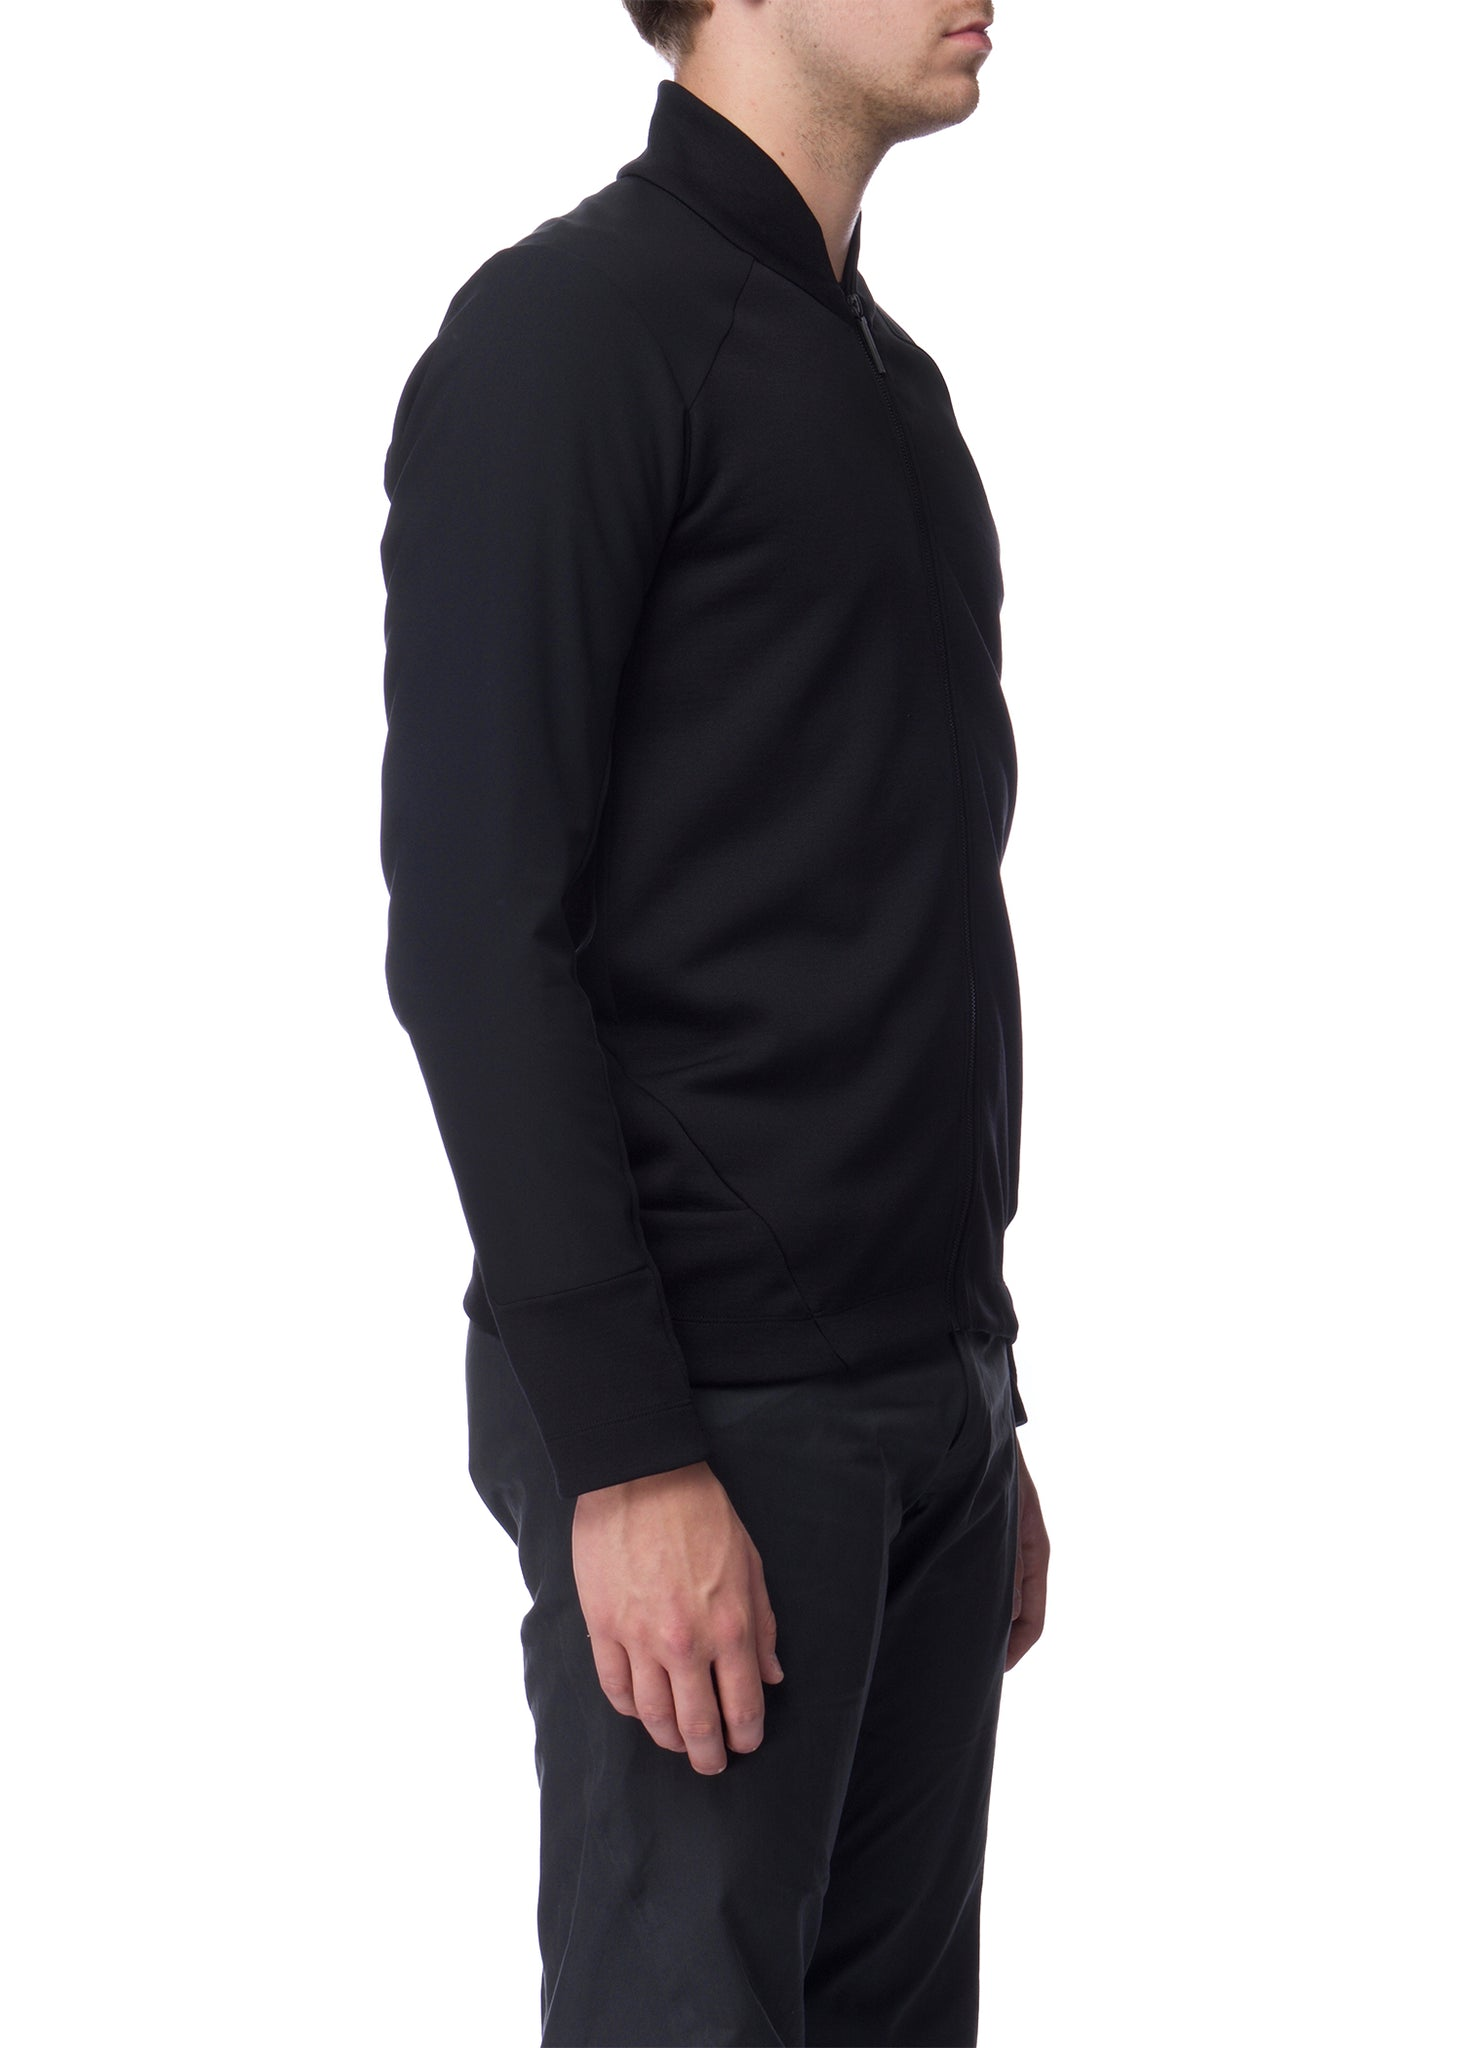 Cardigan noir Graph|Black zip Graph cardigan